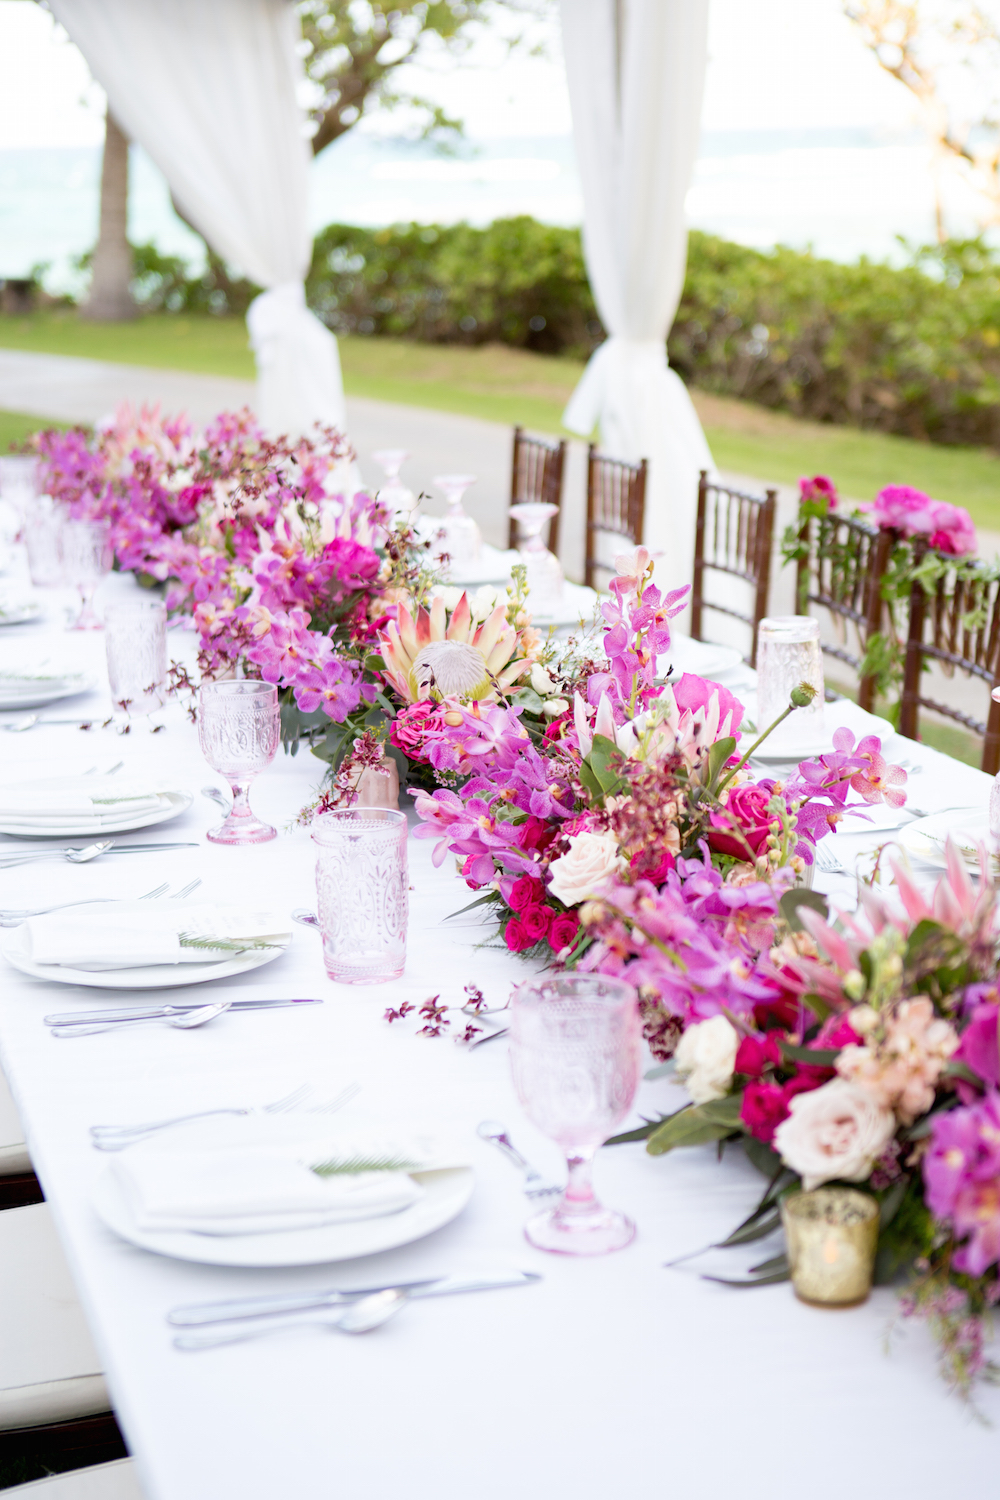 Tropical-hawaii floral centerpieces.jpg